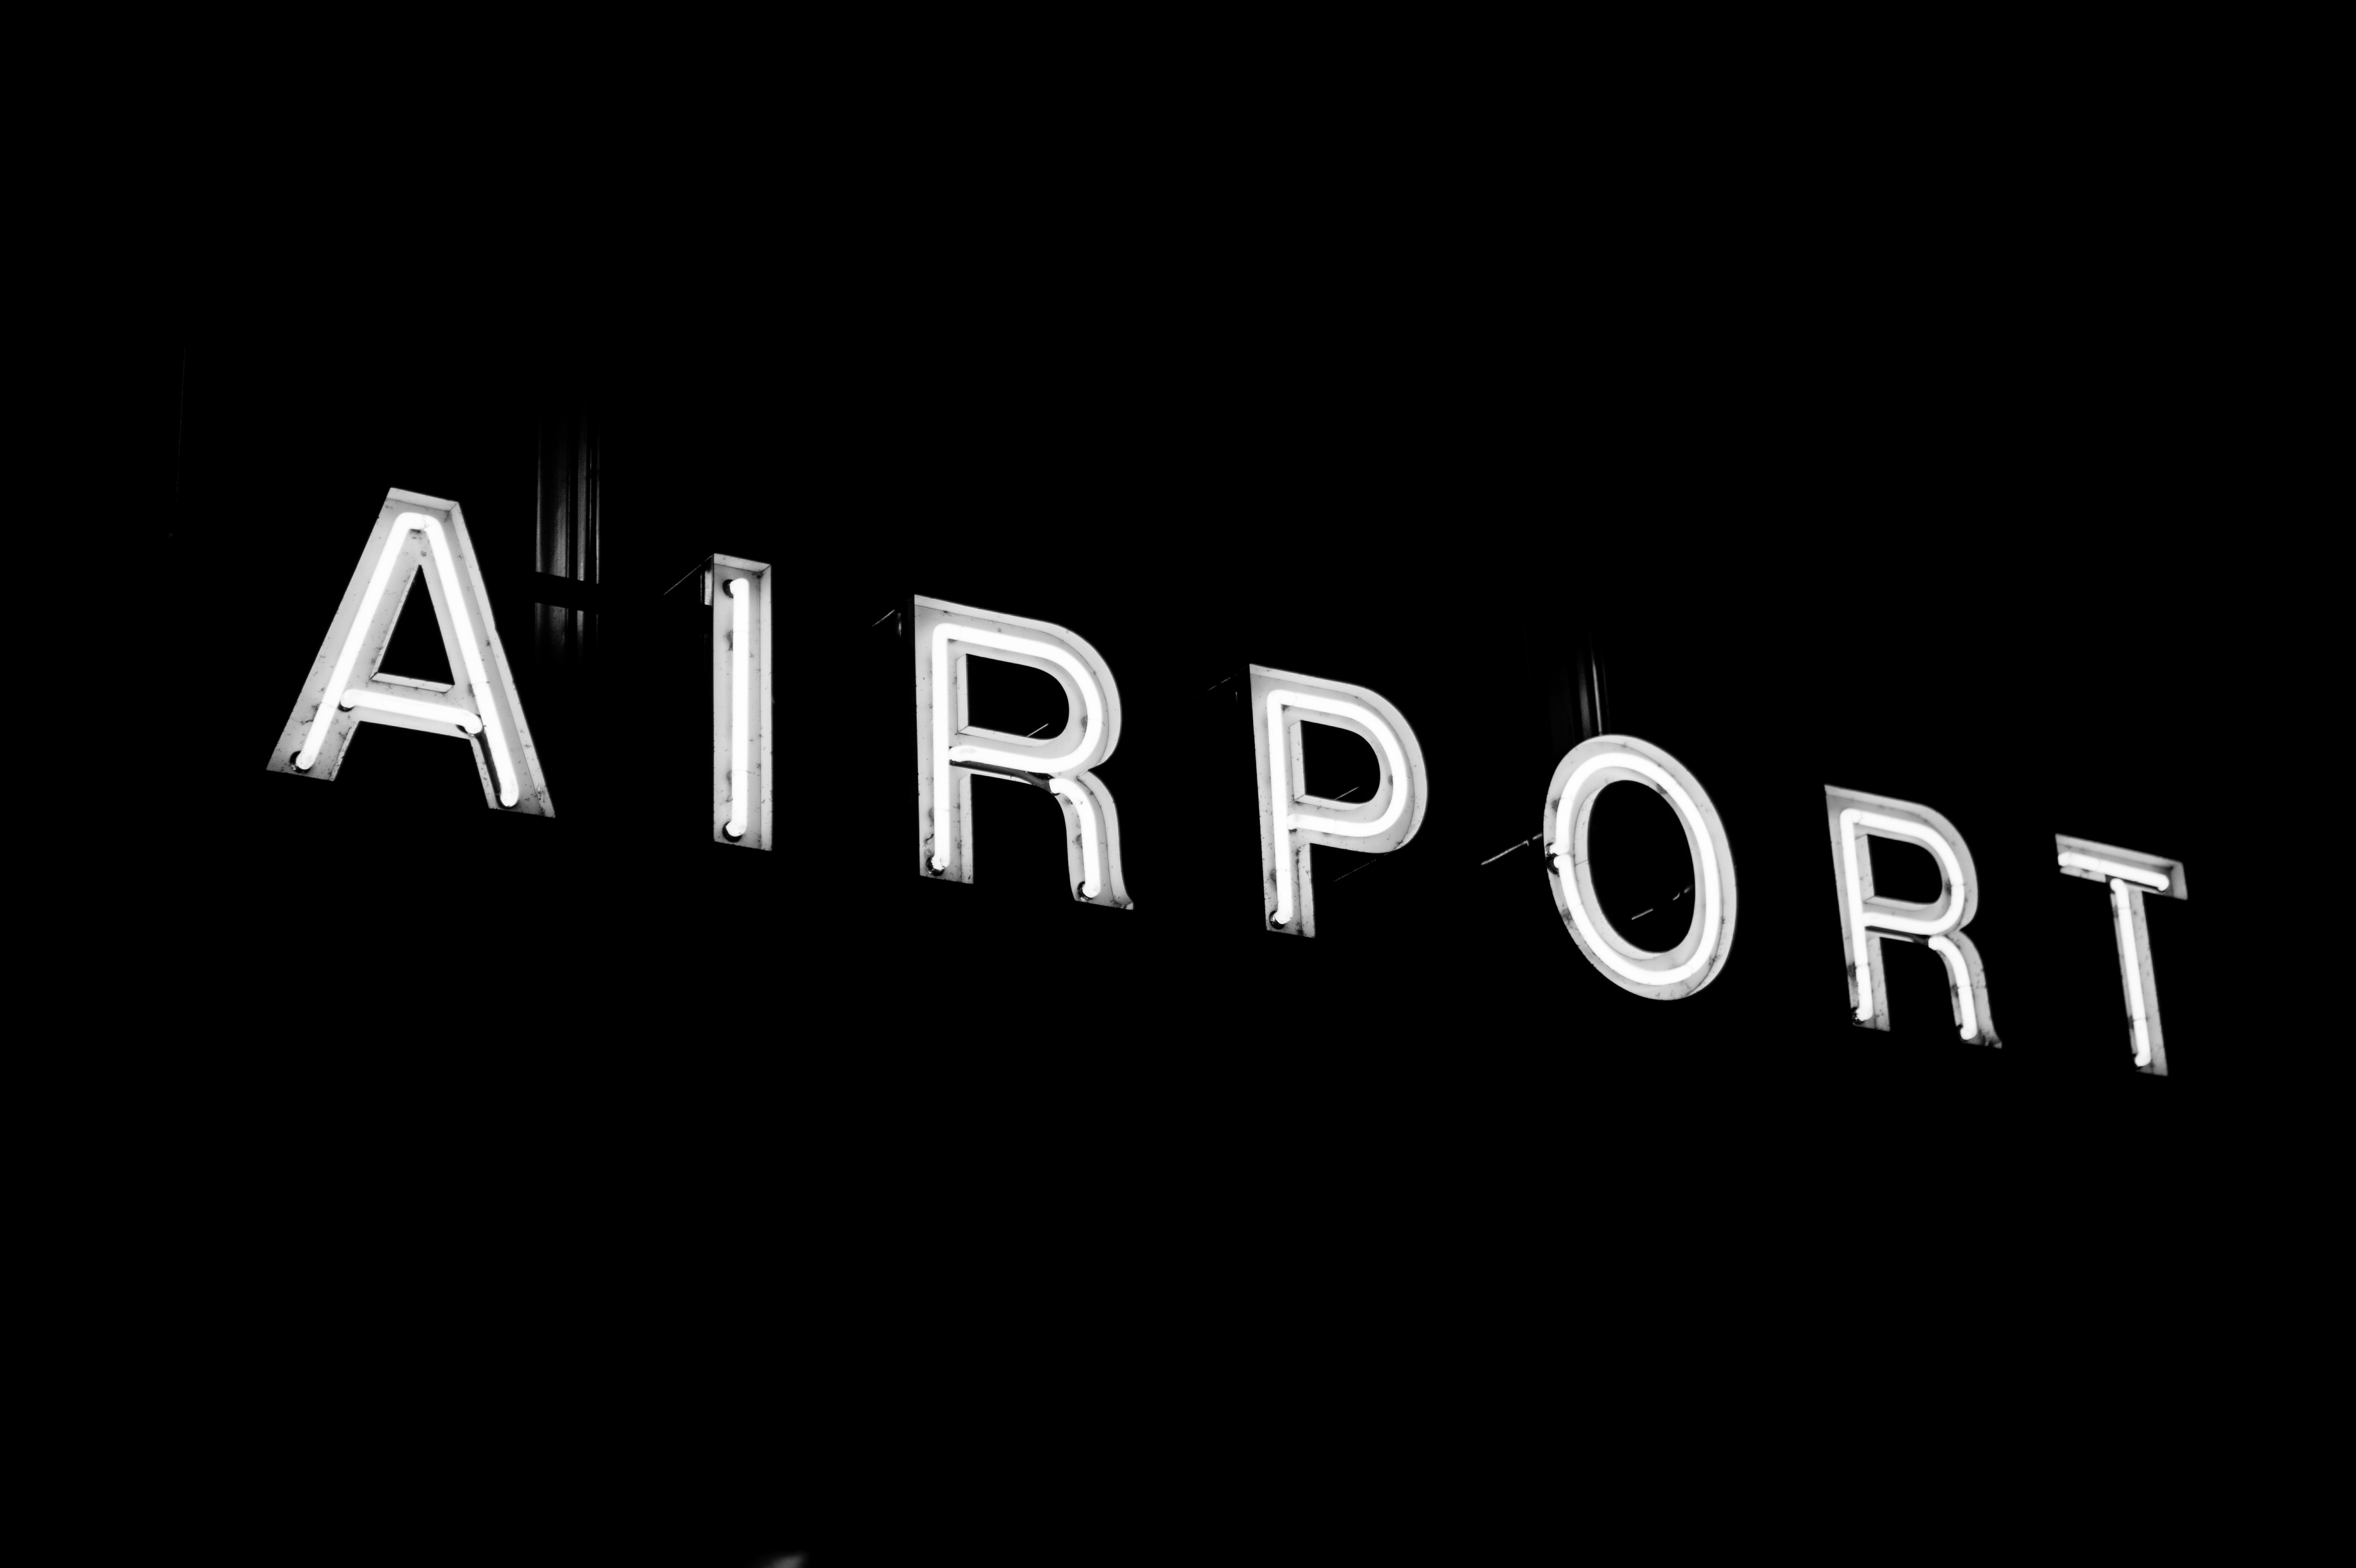 At the Airport, Sign, Light, Dark, Board, HQ Photo